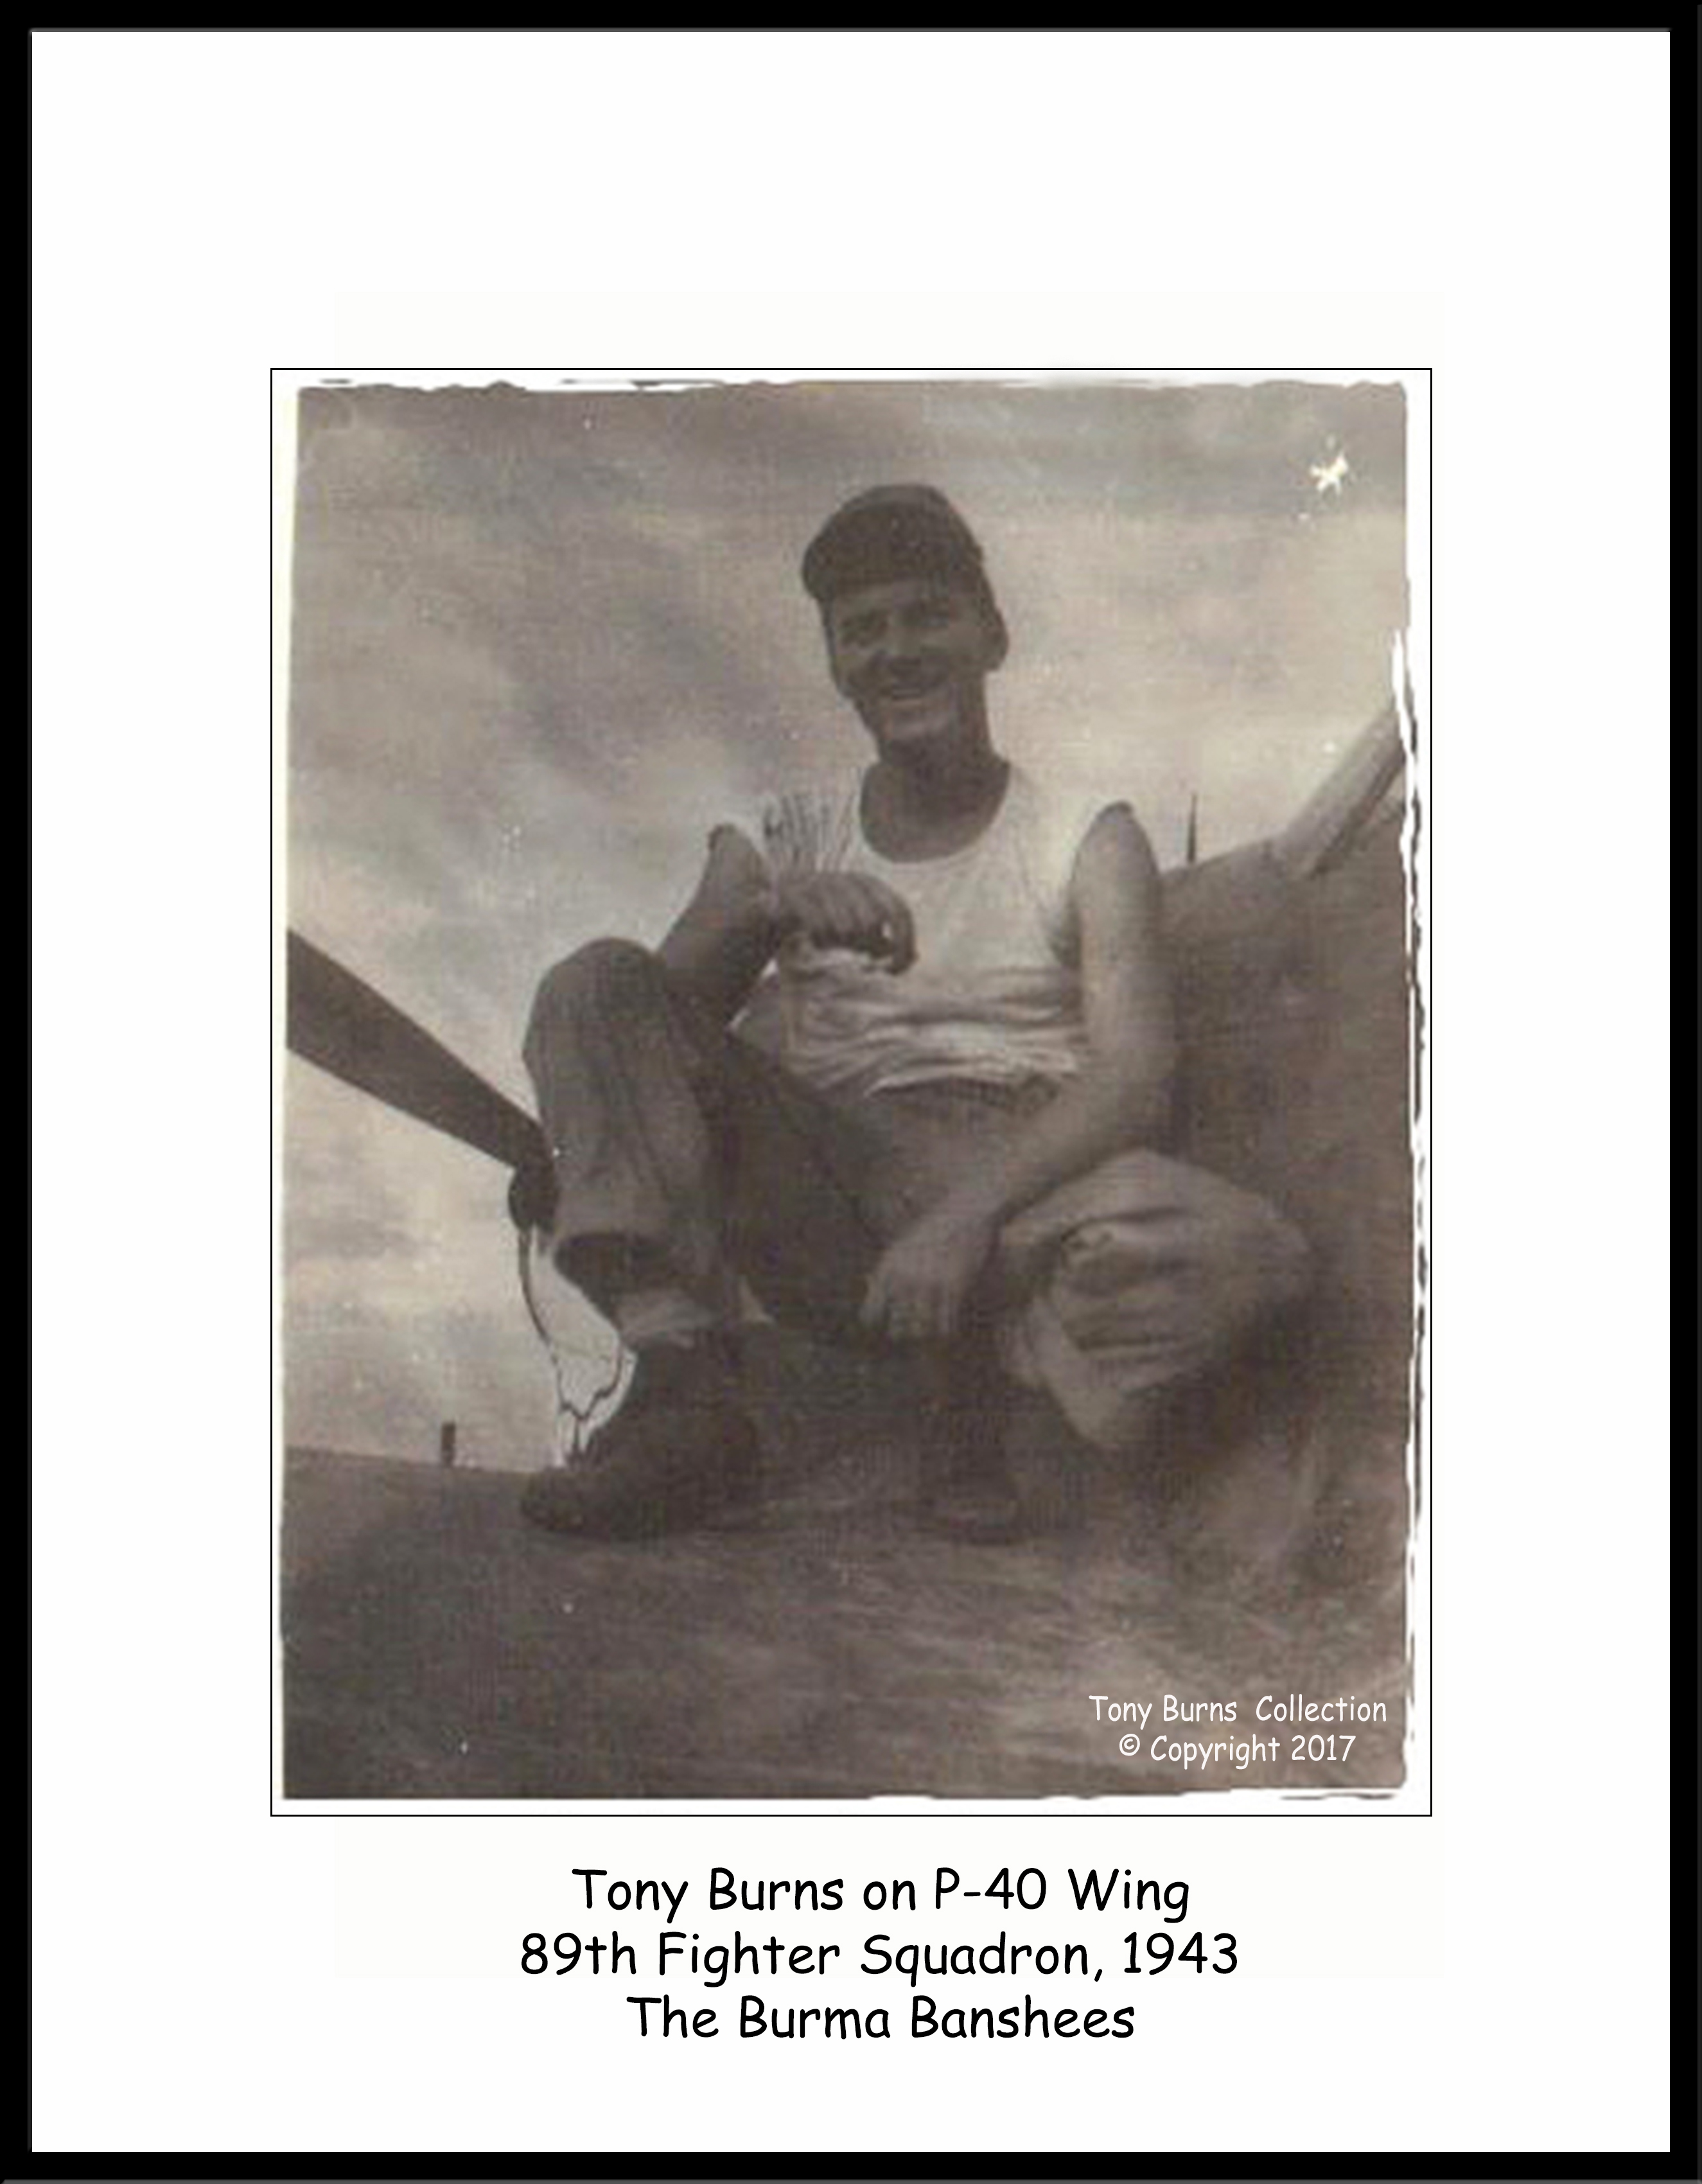 Tony Burns on P-40N wing